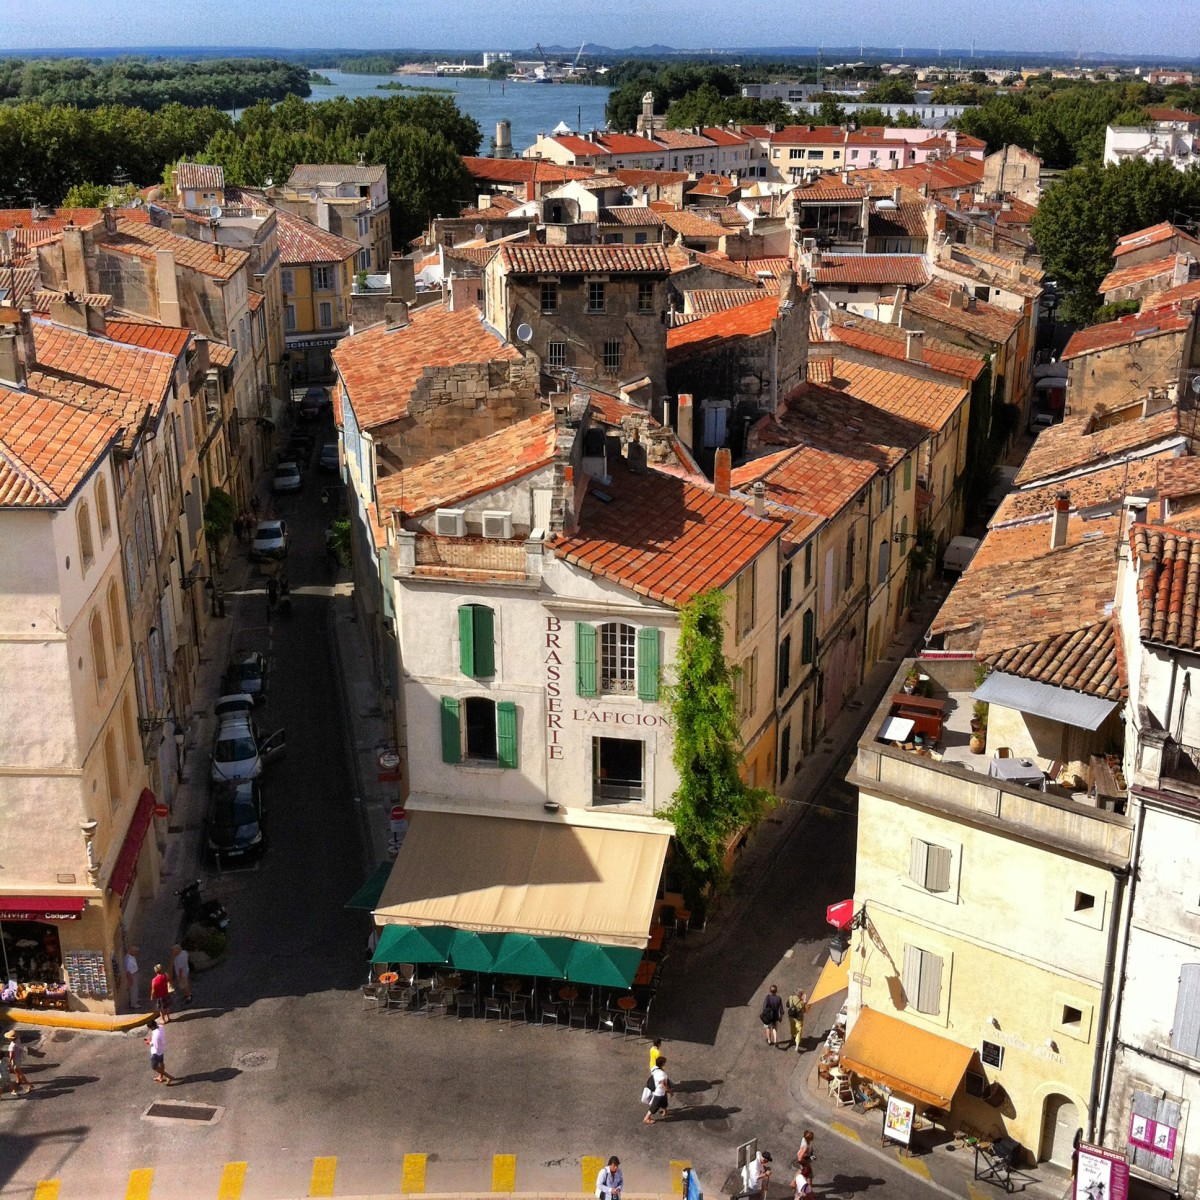 Top 5 Things to Do in Arles, France